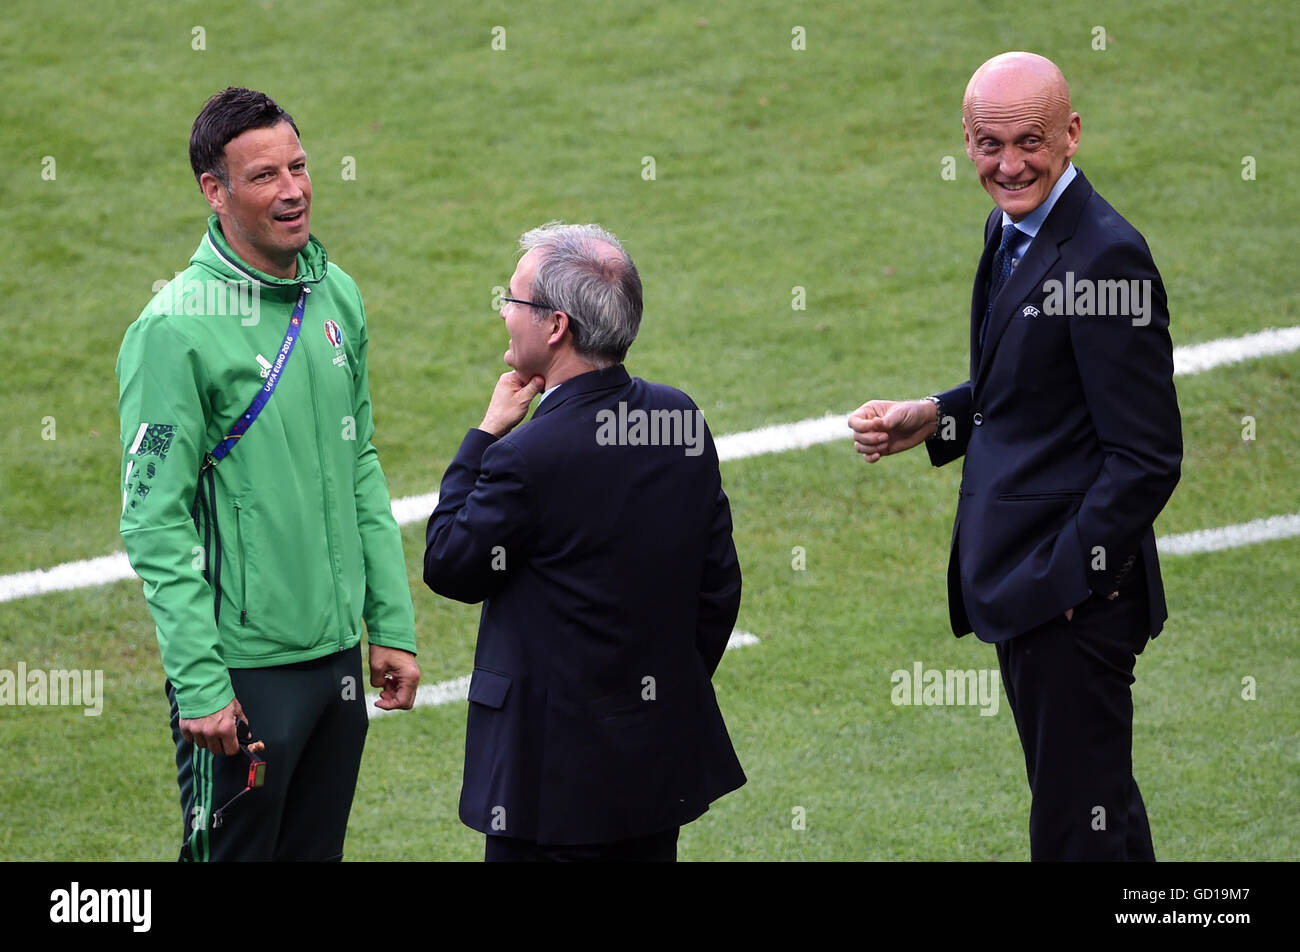 90890a971ec Referee Mark Clattenberg (left) and UEFA s chief refereeing officer Pierluigi  Collina (right) before the UEFA Euro 2016 Final at the Stade de France